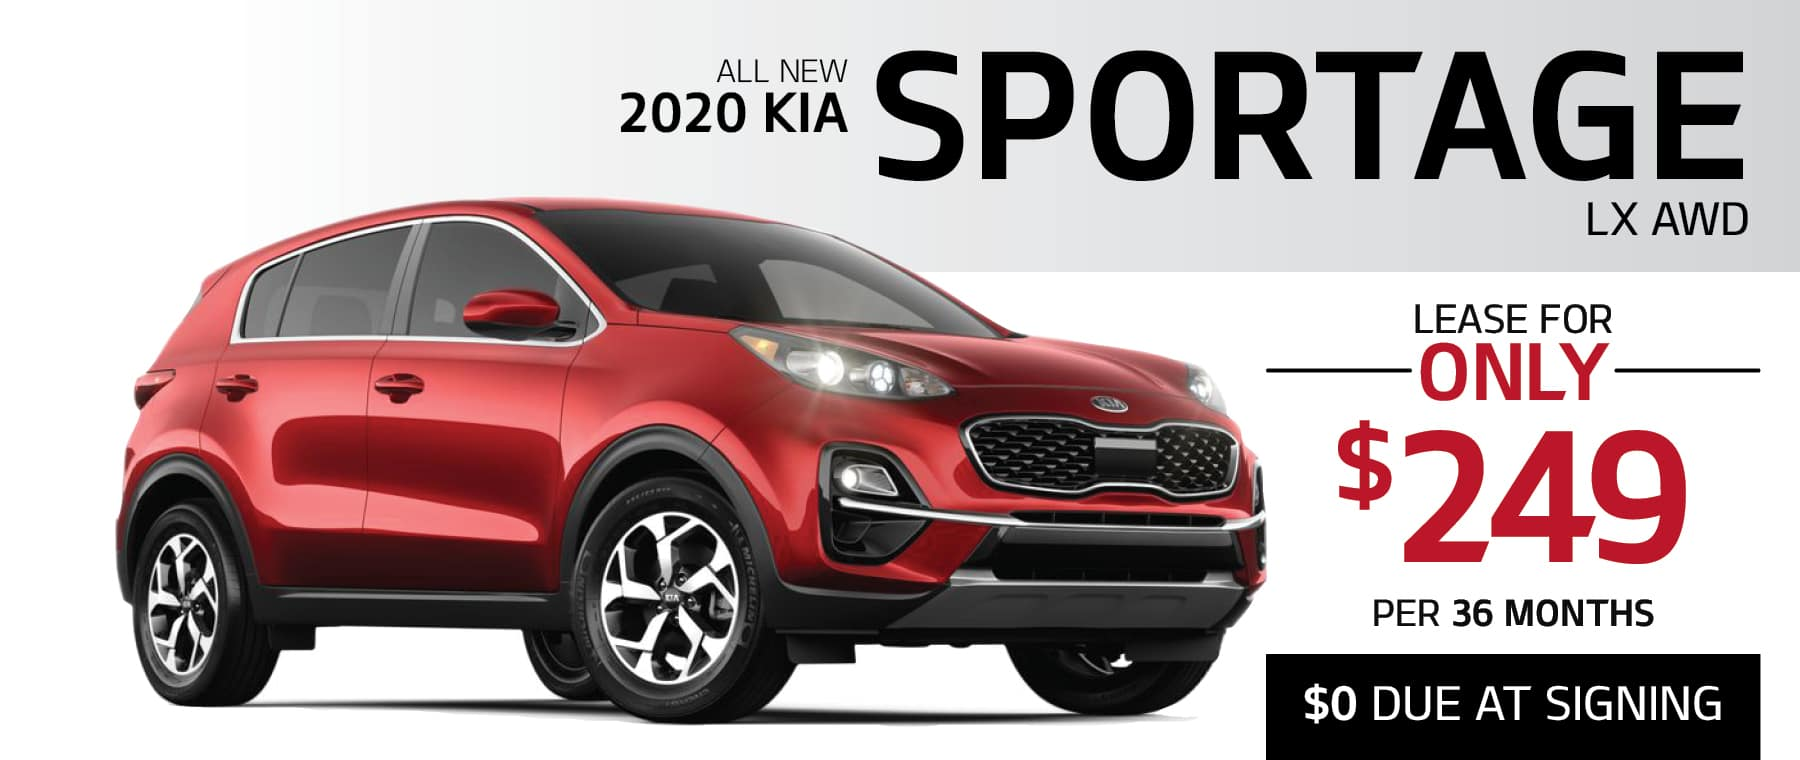 2020 Kia Sportage LX AWD lease for only $249 per month with $0 Due at Signing or finance for 0% APR for up to 75 Months